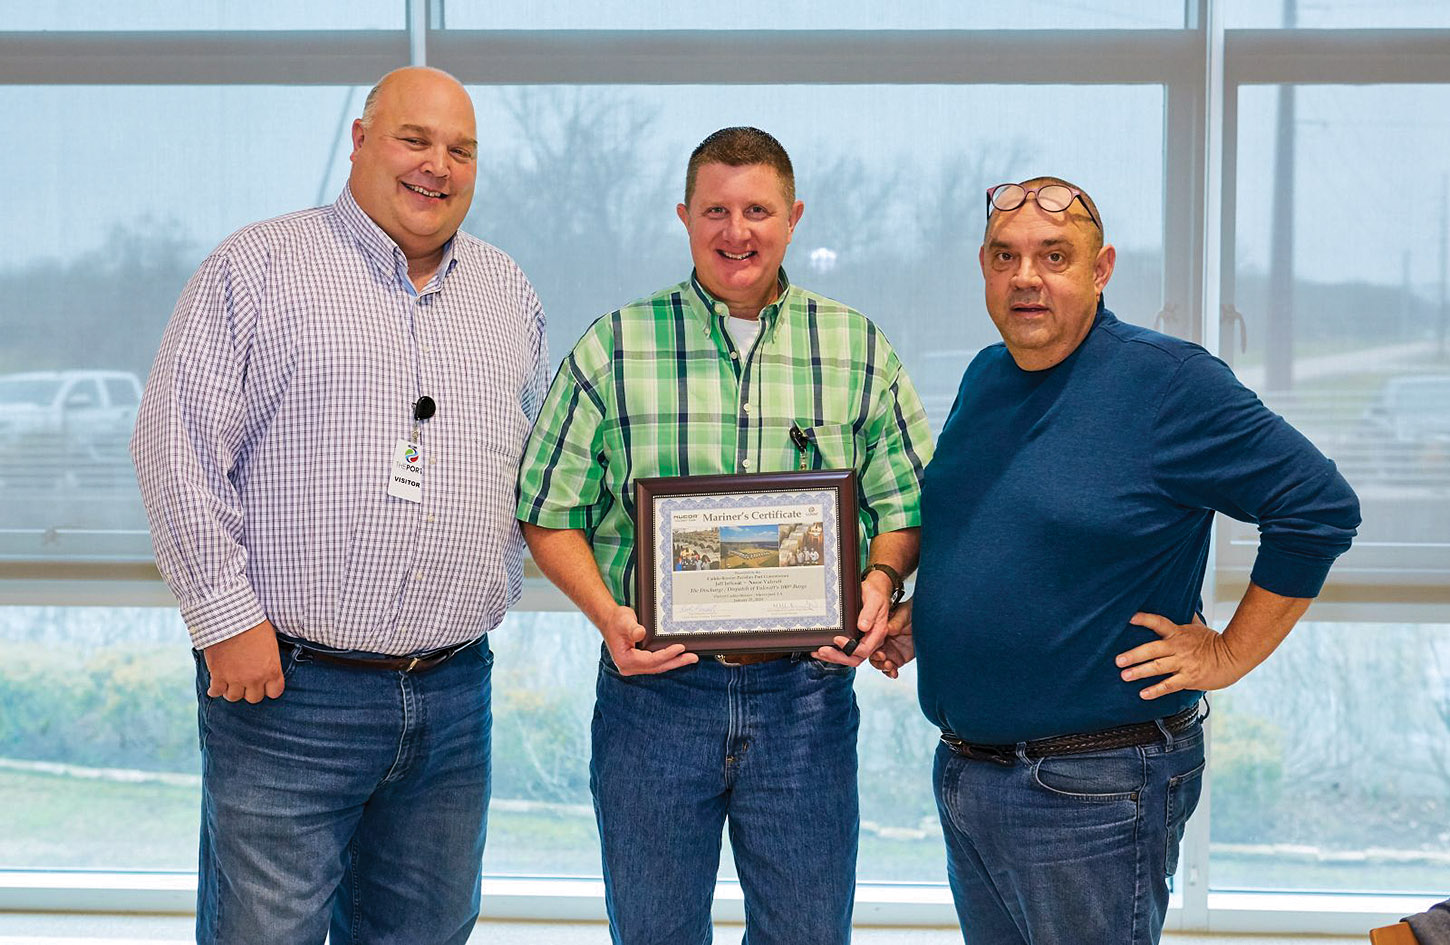 From left, Eric Gilmore from the Red River Waterway Commission, Nucor Corporation's Jeff Jeffcoat and Ted Knight, director of Operations for Port of Caddo-Bossier, gather for a photo at the luncheon celebrating the 100th barge loaded with steel coils from Nucor handled at the port. (Photo courtesy of Port of Caddo-Bossier)